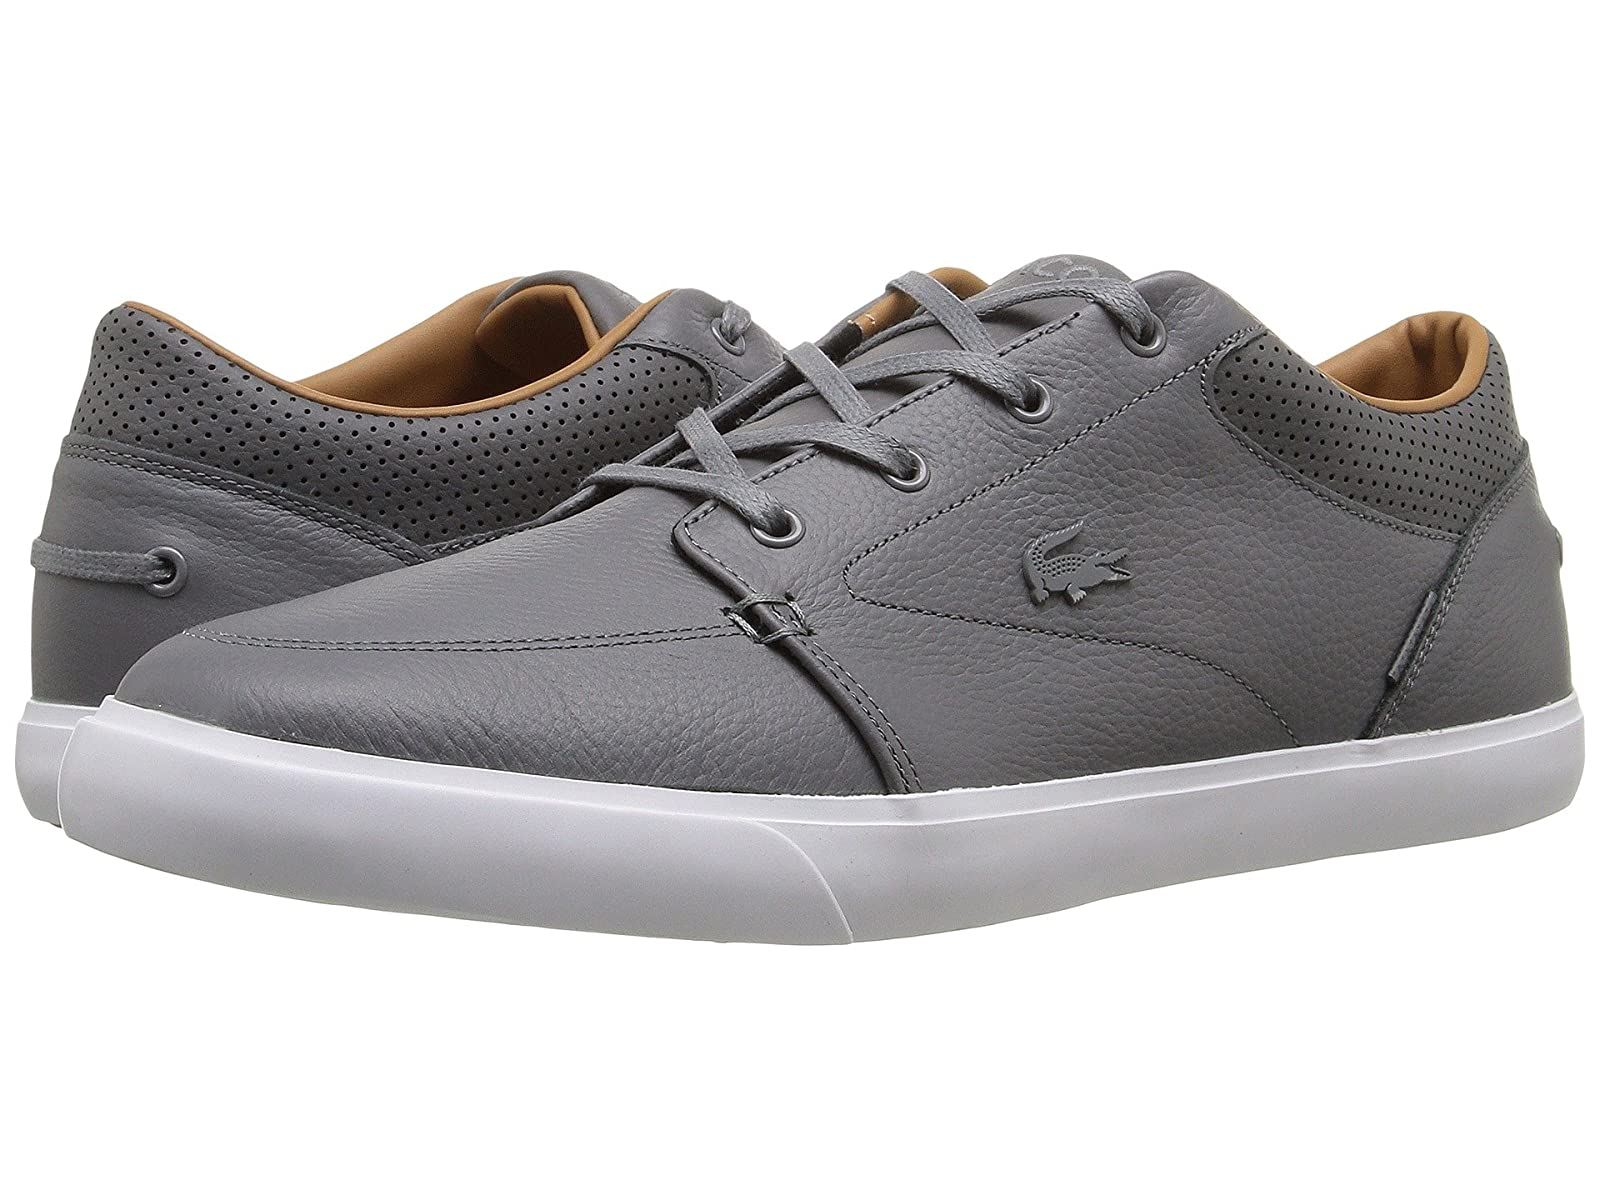 Lacoste Bayliss Vulc G416 1Atmospheric grades have affordable shoes